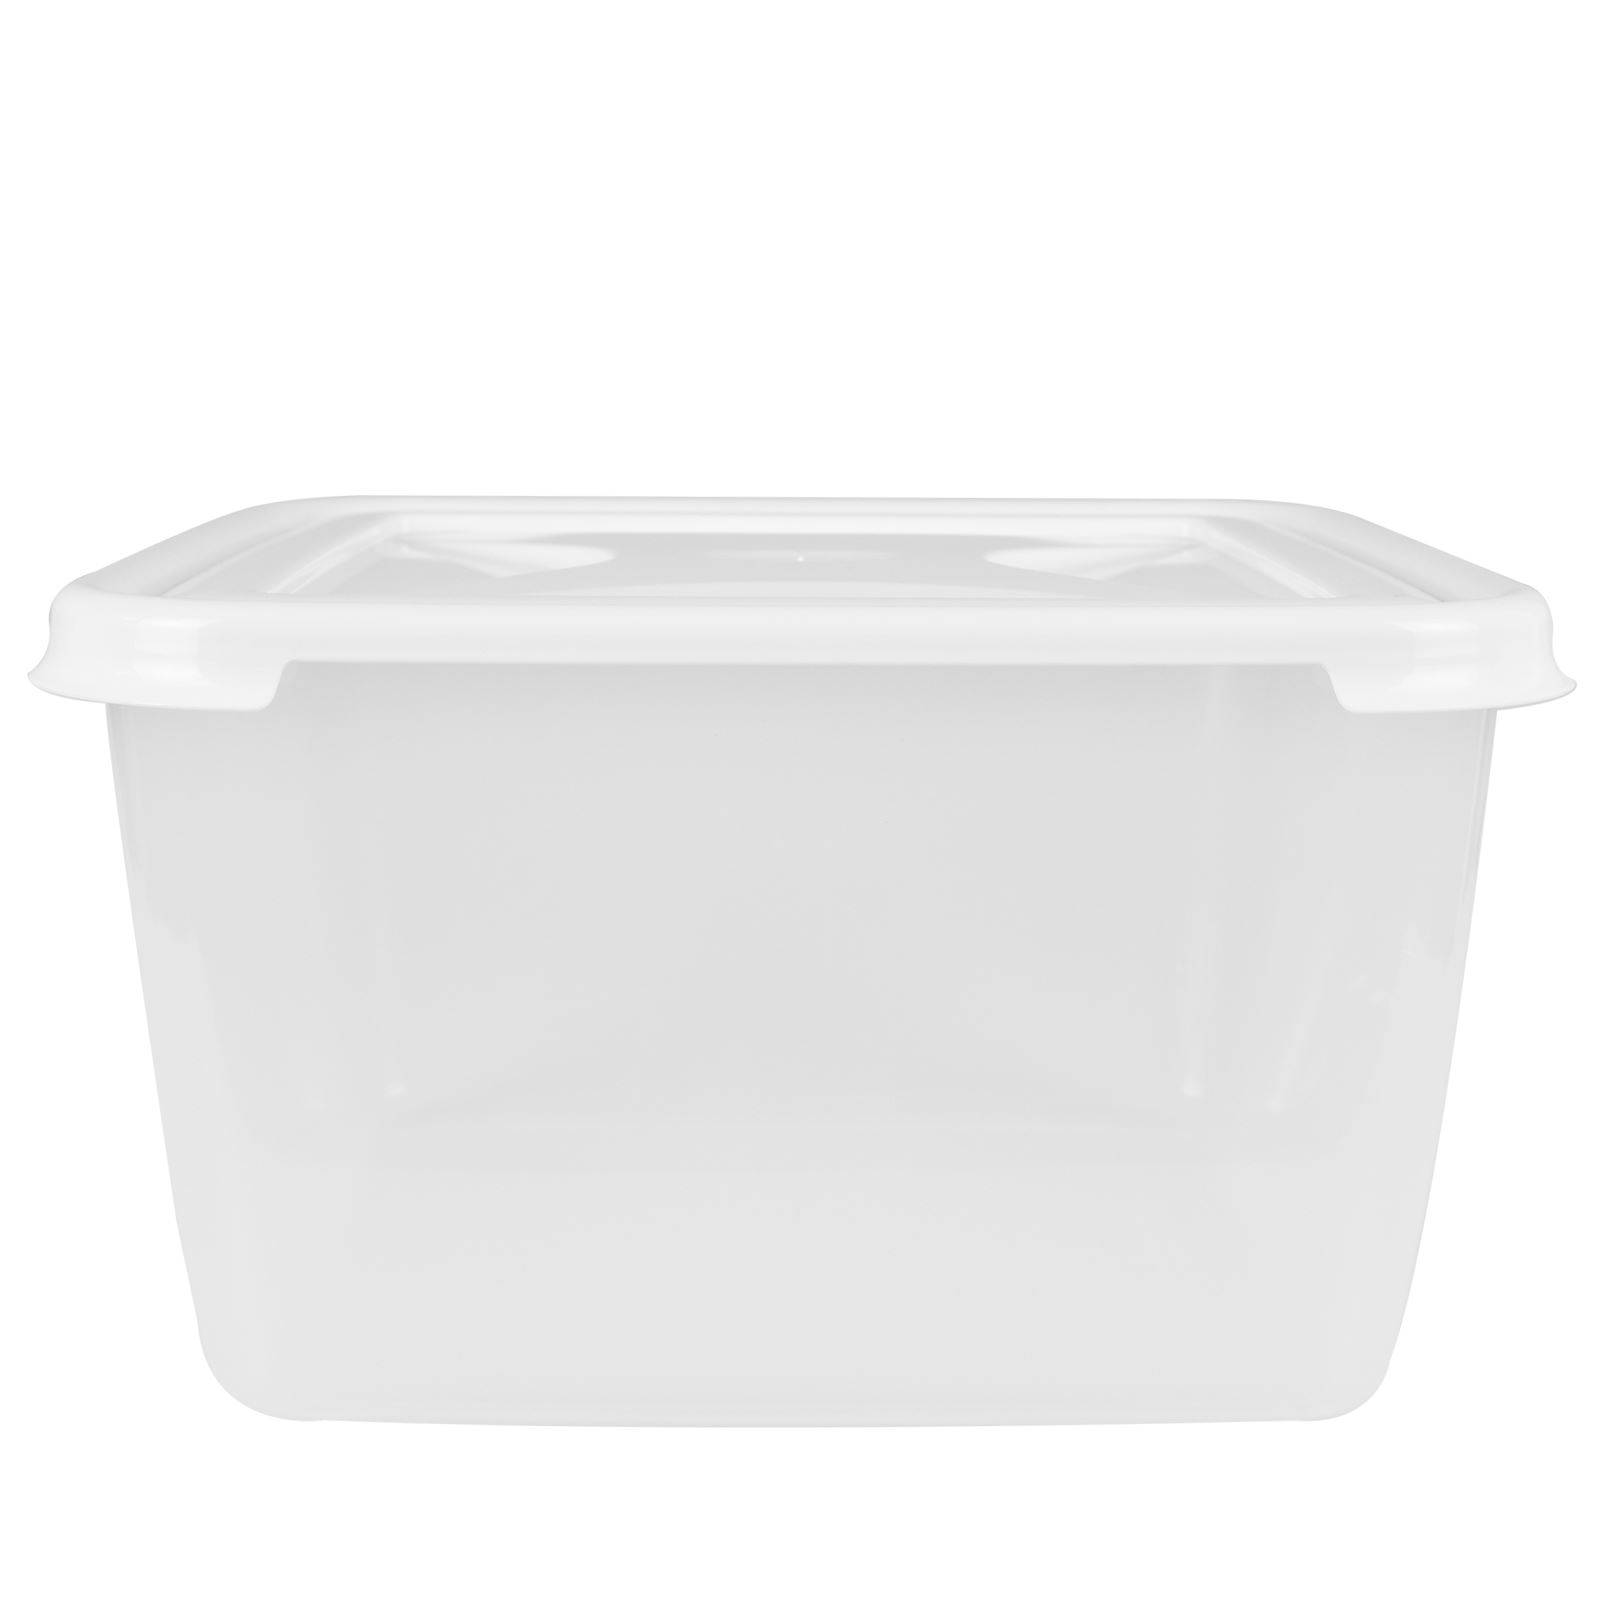 Wham-Plastic-Food-Storage-Shelf-Box-Stackable-Containers-Clear-Secure-Clip-Lid thumbnail 10